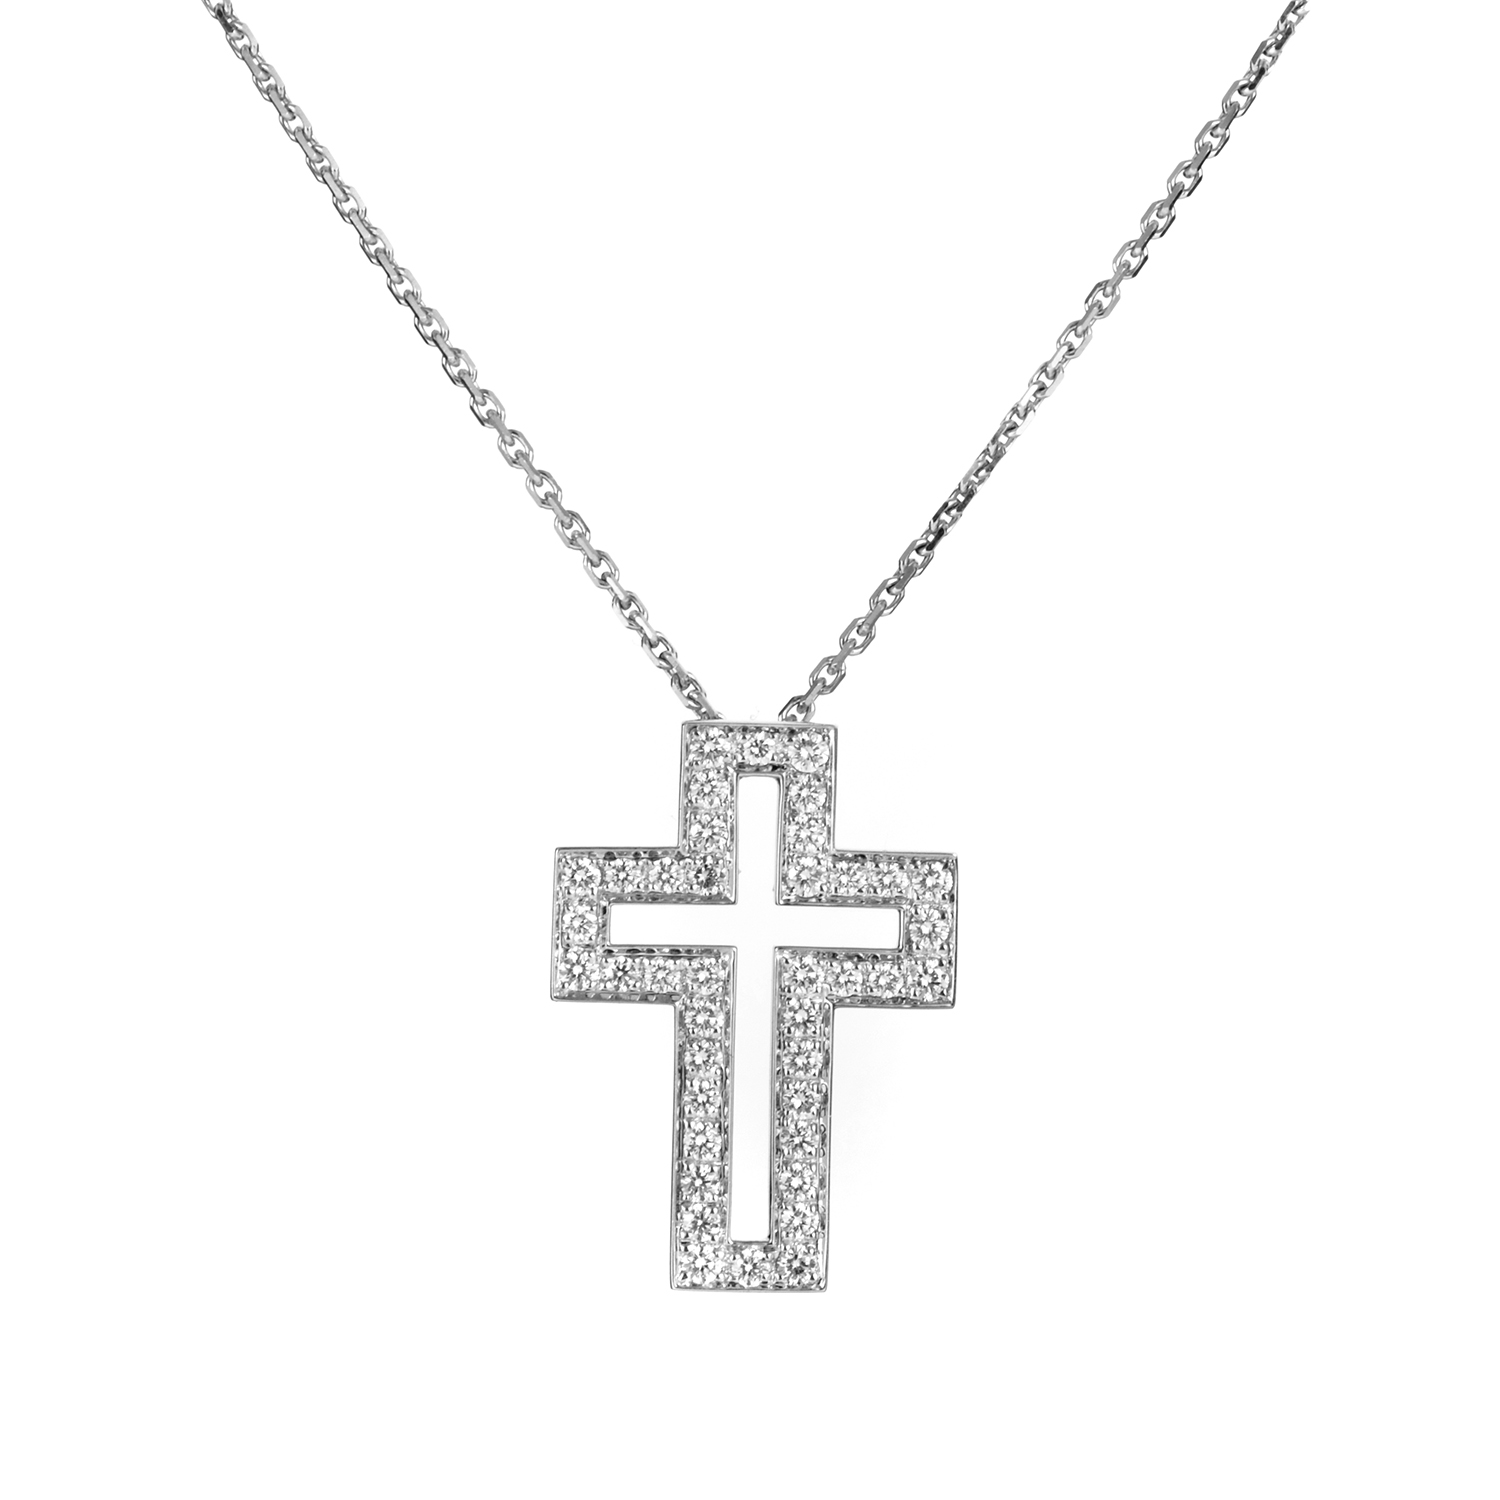 boucheron 18k white gold diamond cross pendant necklace. Black Bedroom Furniture Sets. Home Design Ideas